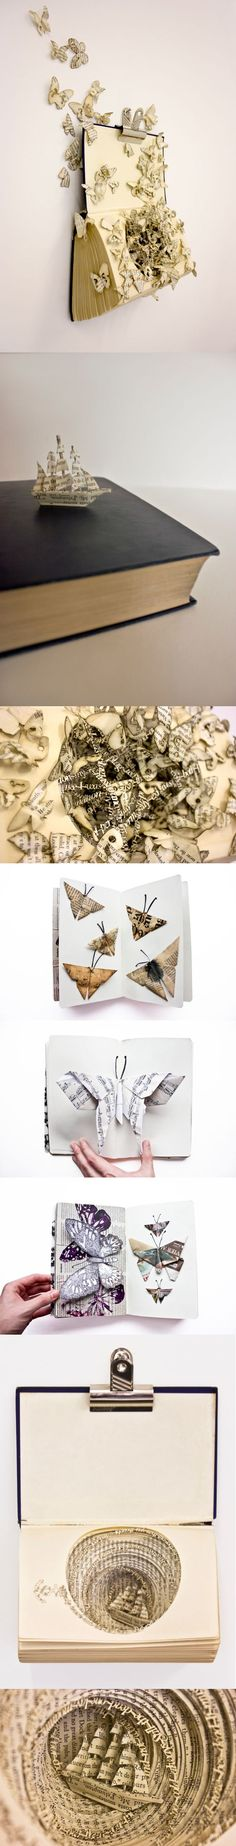 Book art by Thomas Wightman. This is all gorgeous. Done by people withway more p - Sculpture - Print the sulpture yourself - Book art by Thomas Wightman. This is all gorgeous. Done by people withway more patience than me: Origami, Up Book, Book Art, Altered Books, Book Sculpture, Paper Sculptures, Book Projects, Clay Projects, Antique Books